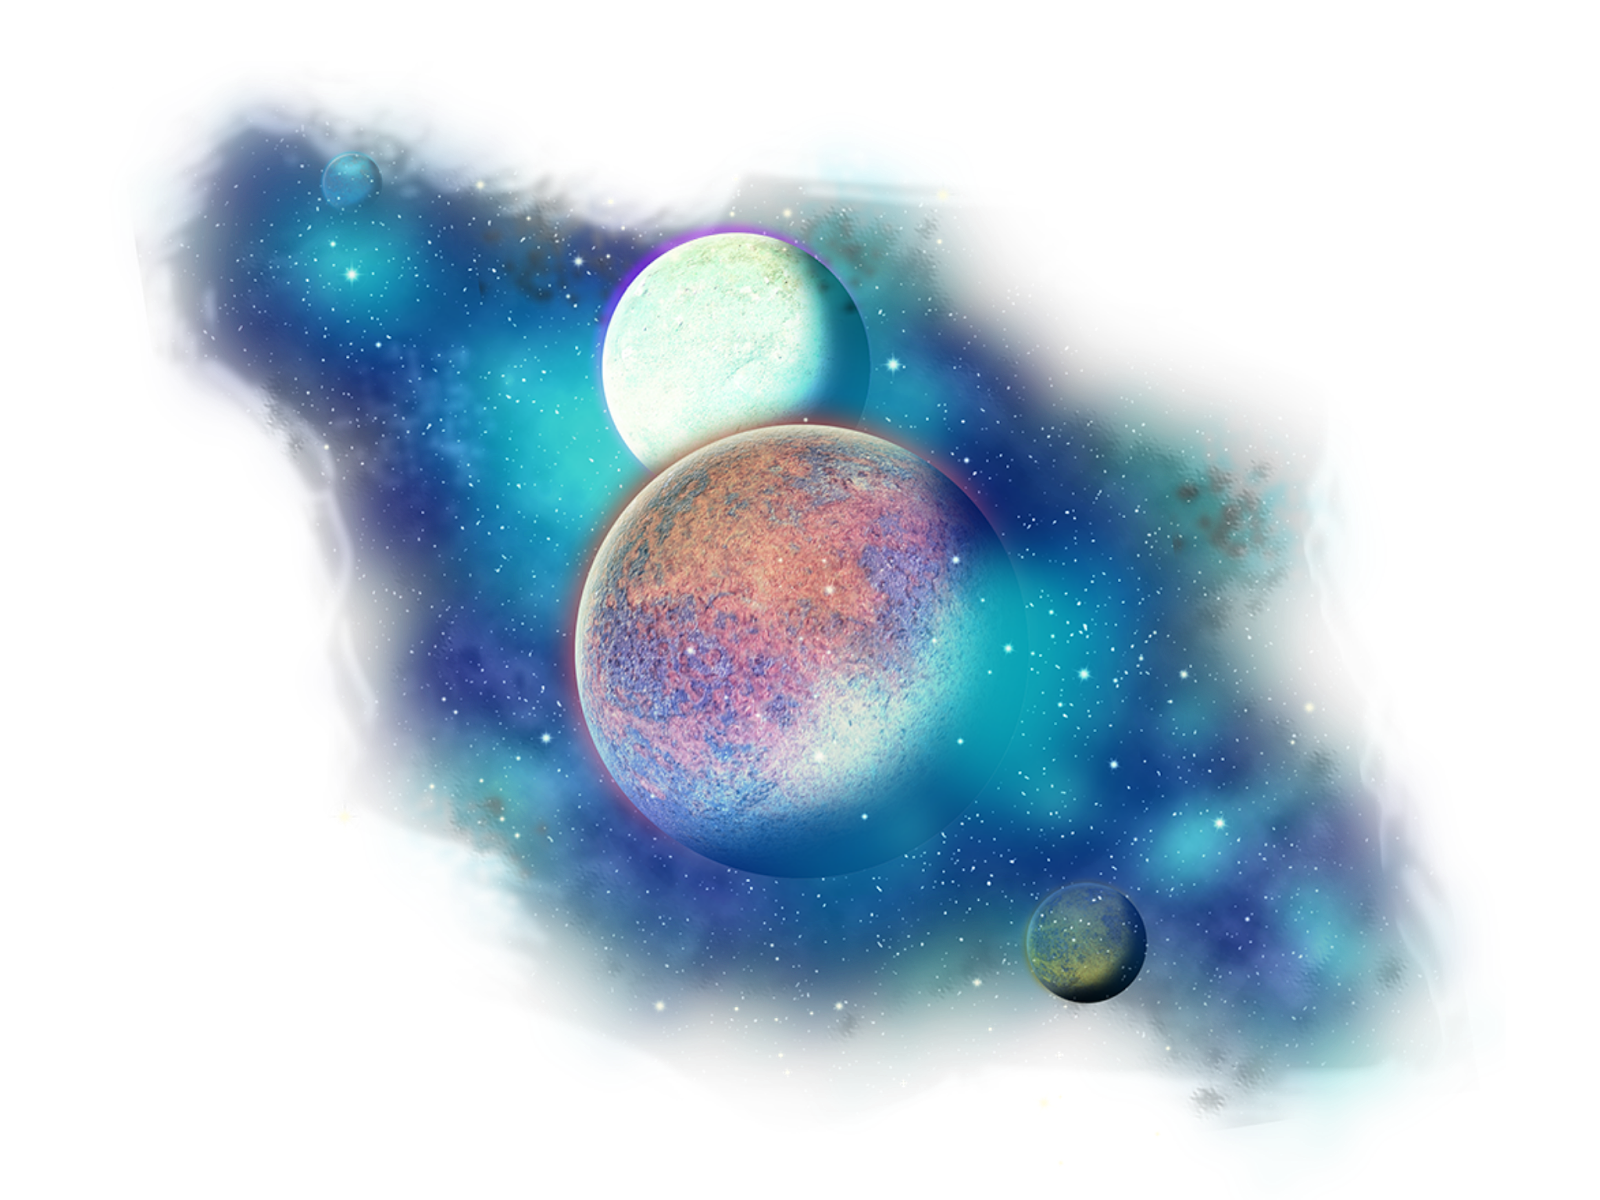 Planet svg galaxy watercolor. Pin by david haaz